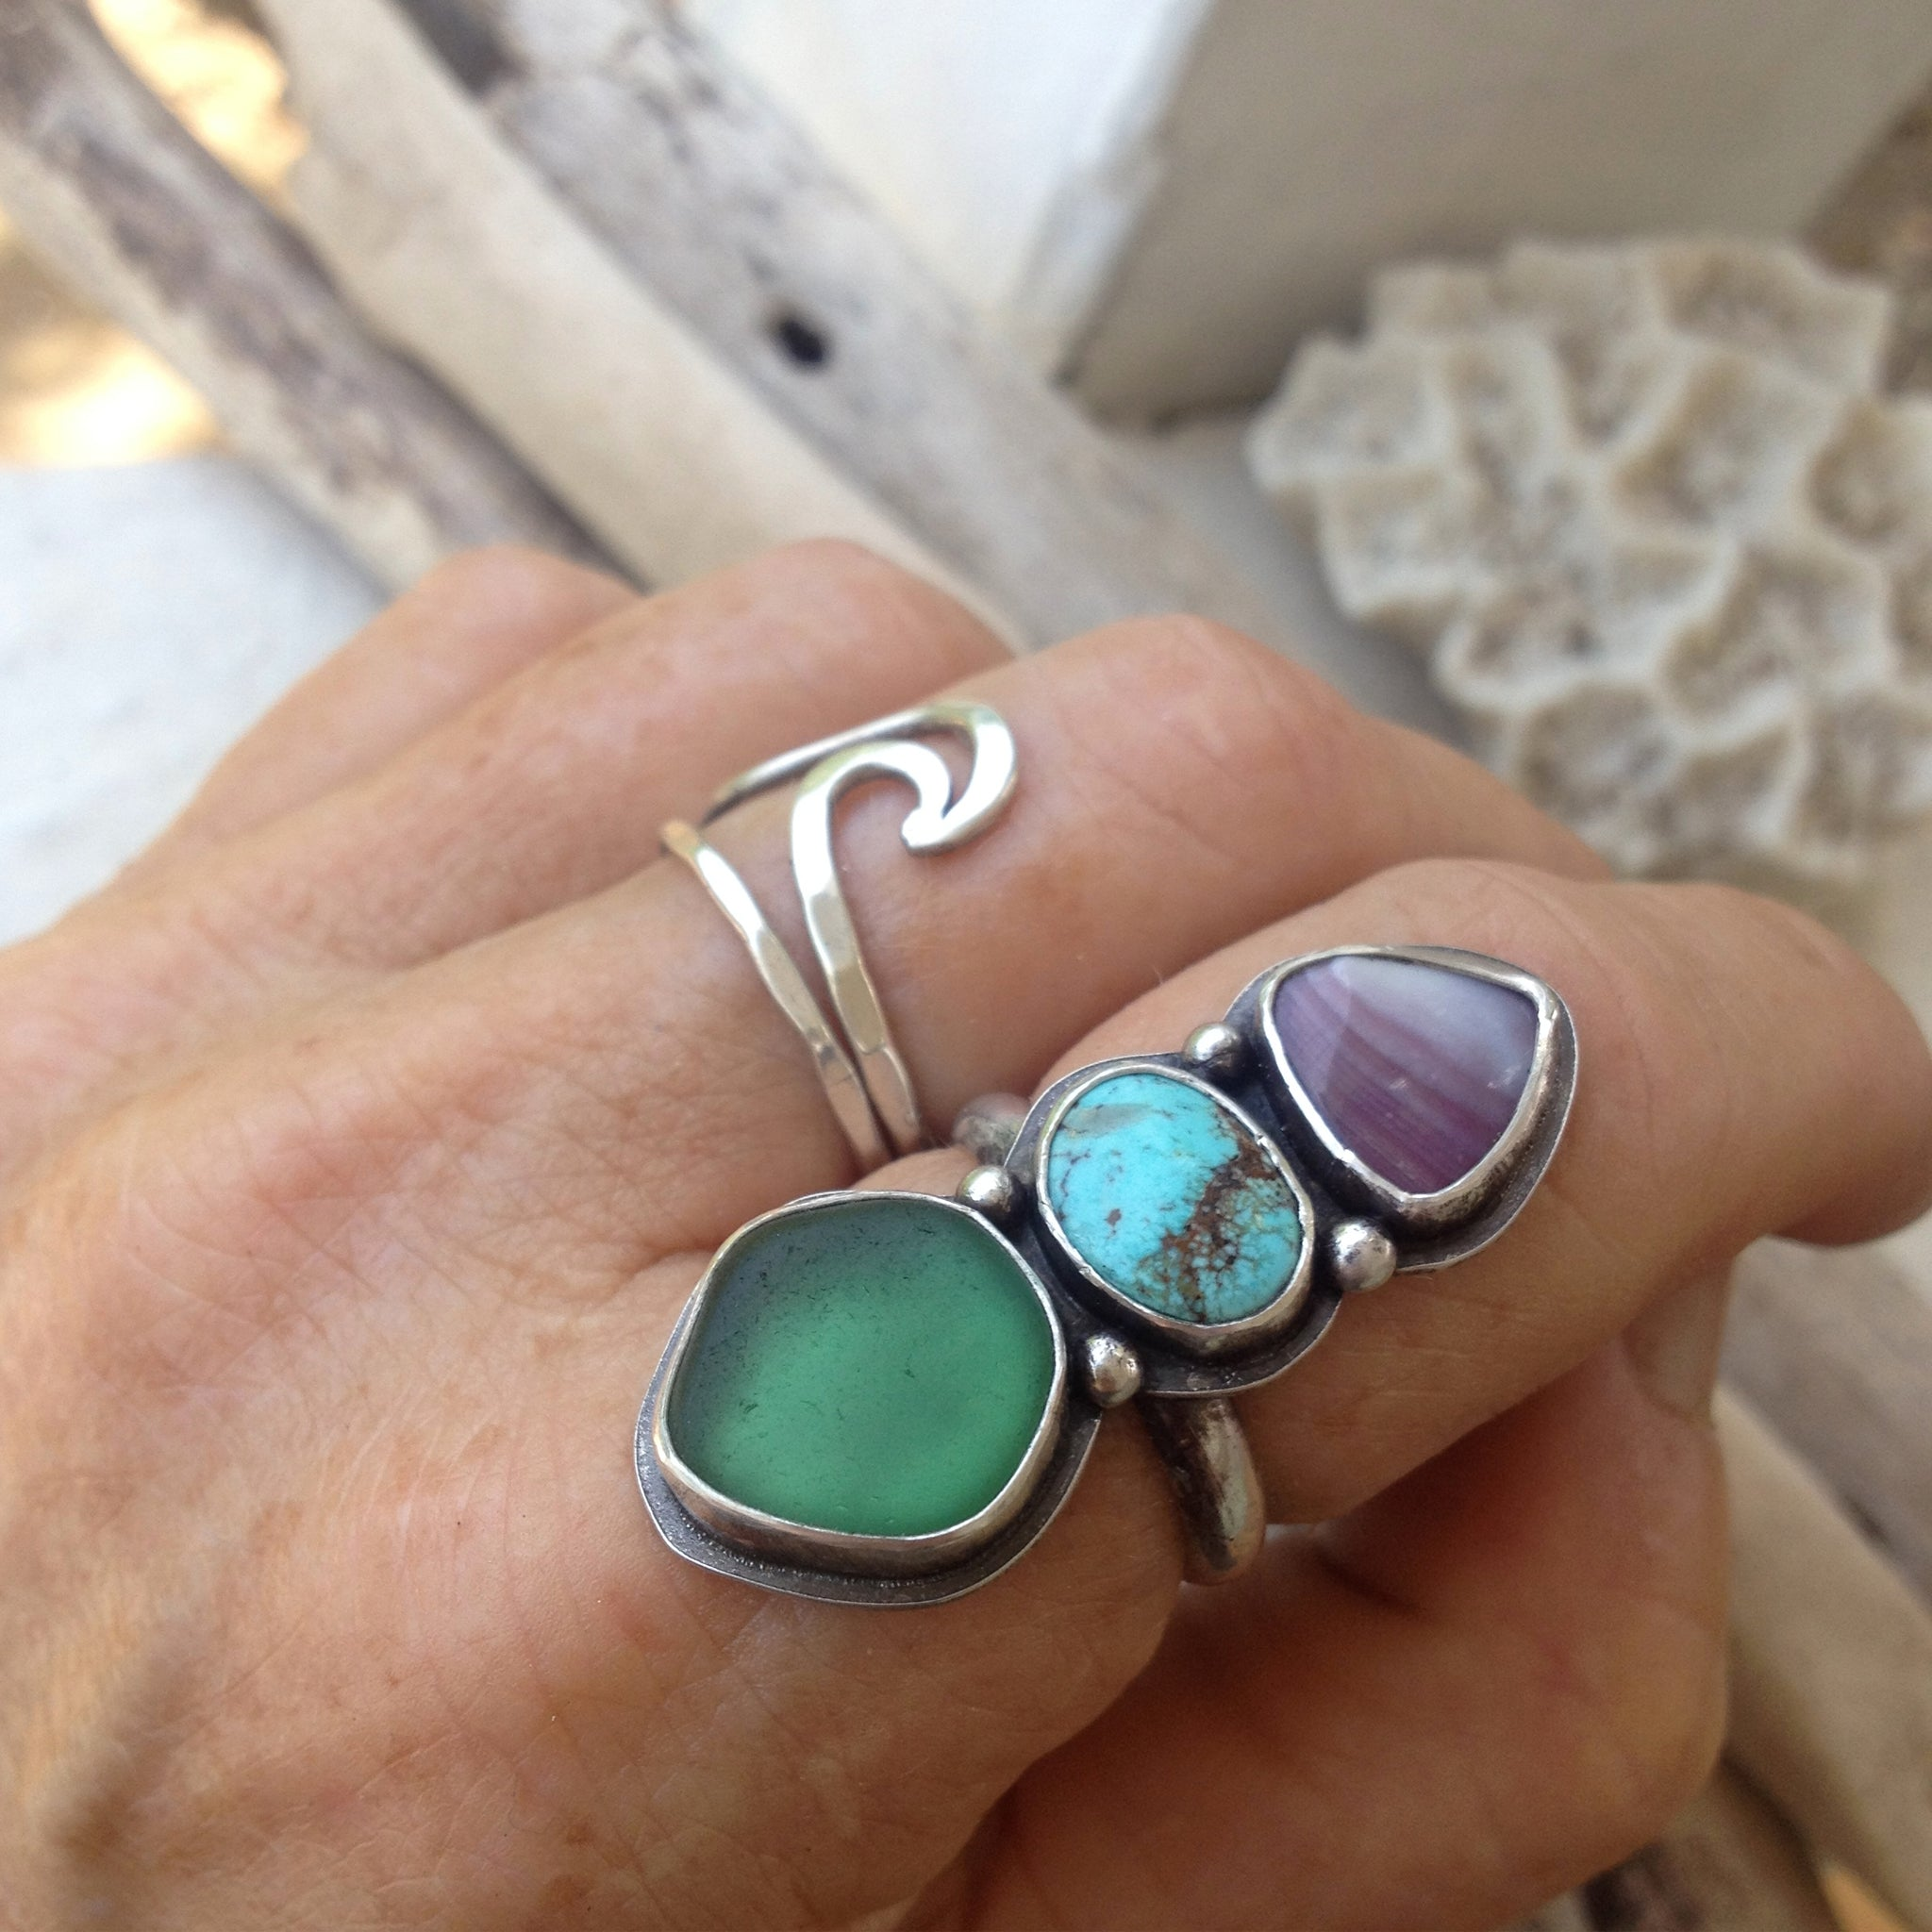 Sea-and-Sky-Trio-Ring-Wampum-Turquoise-and-Sea-Glass-Set-in-Sterling-Silver-Shown-on-Hand